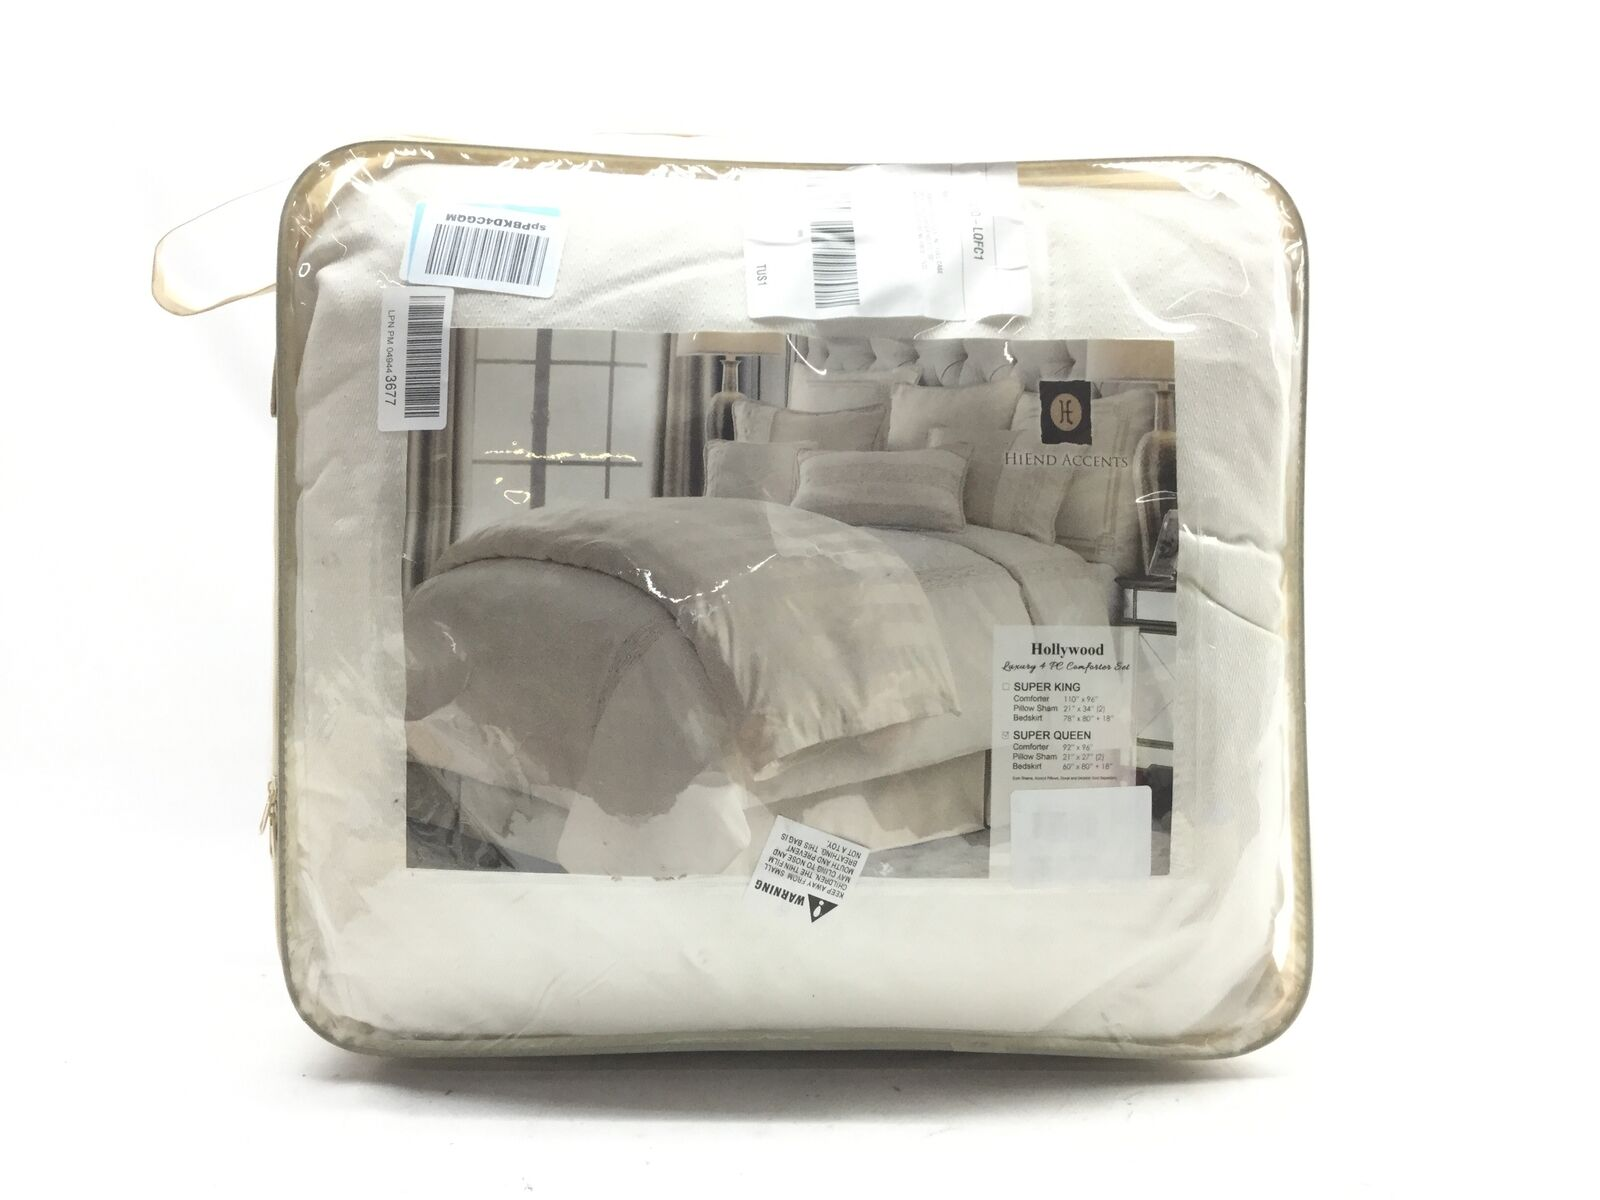 hiend-accents-hollywood-4-pc-super-queen-4-piece-comforter-set-multi